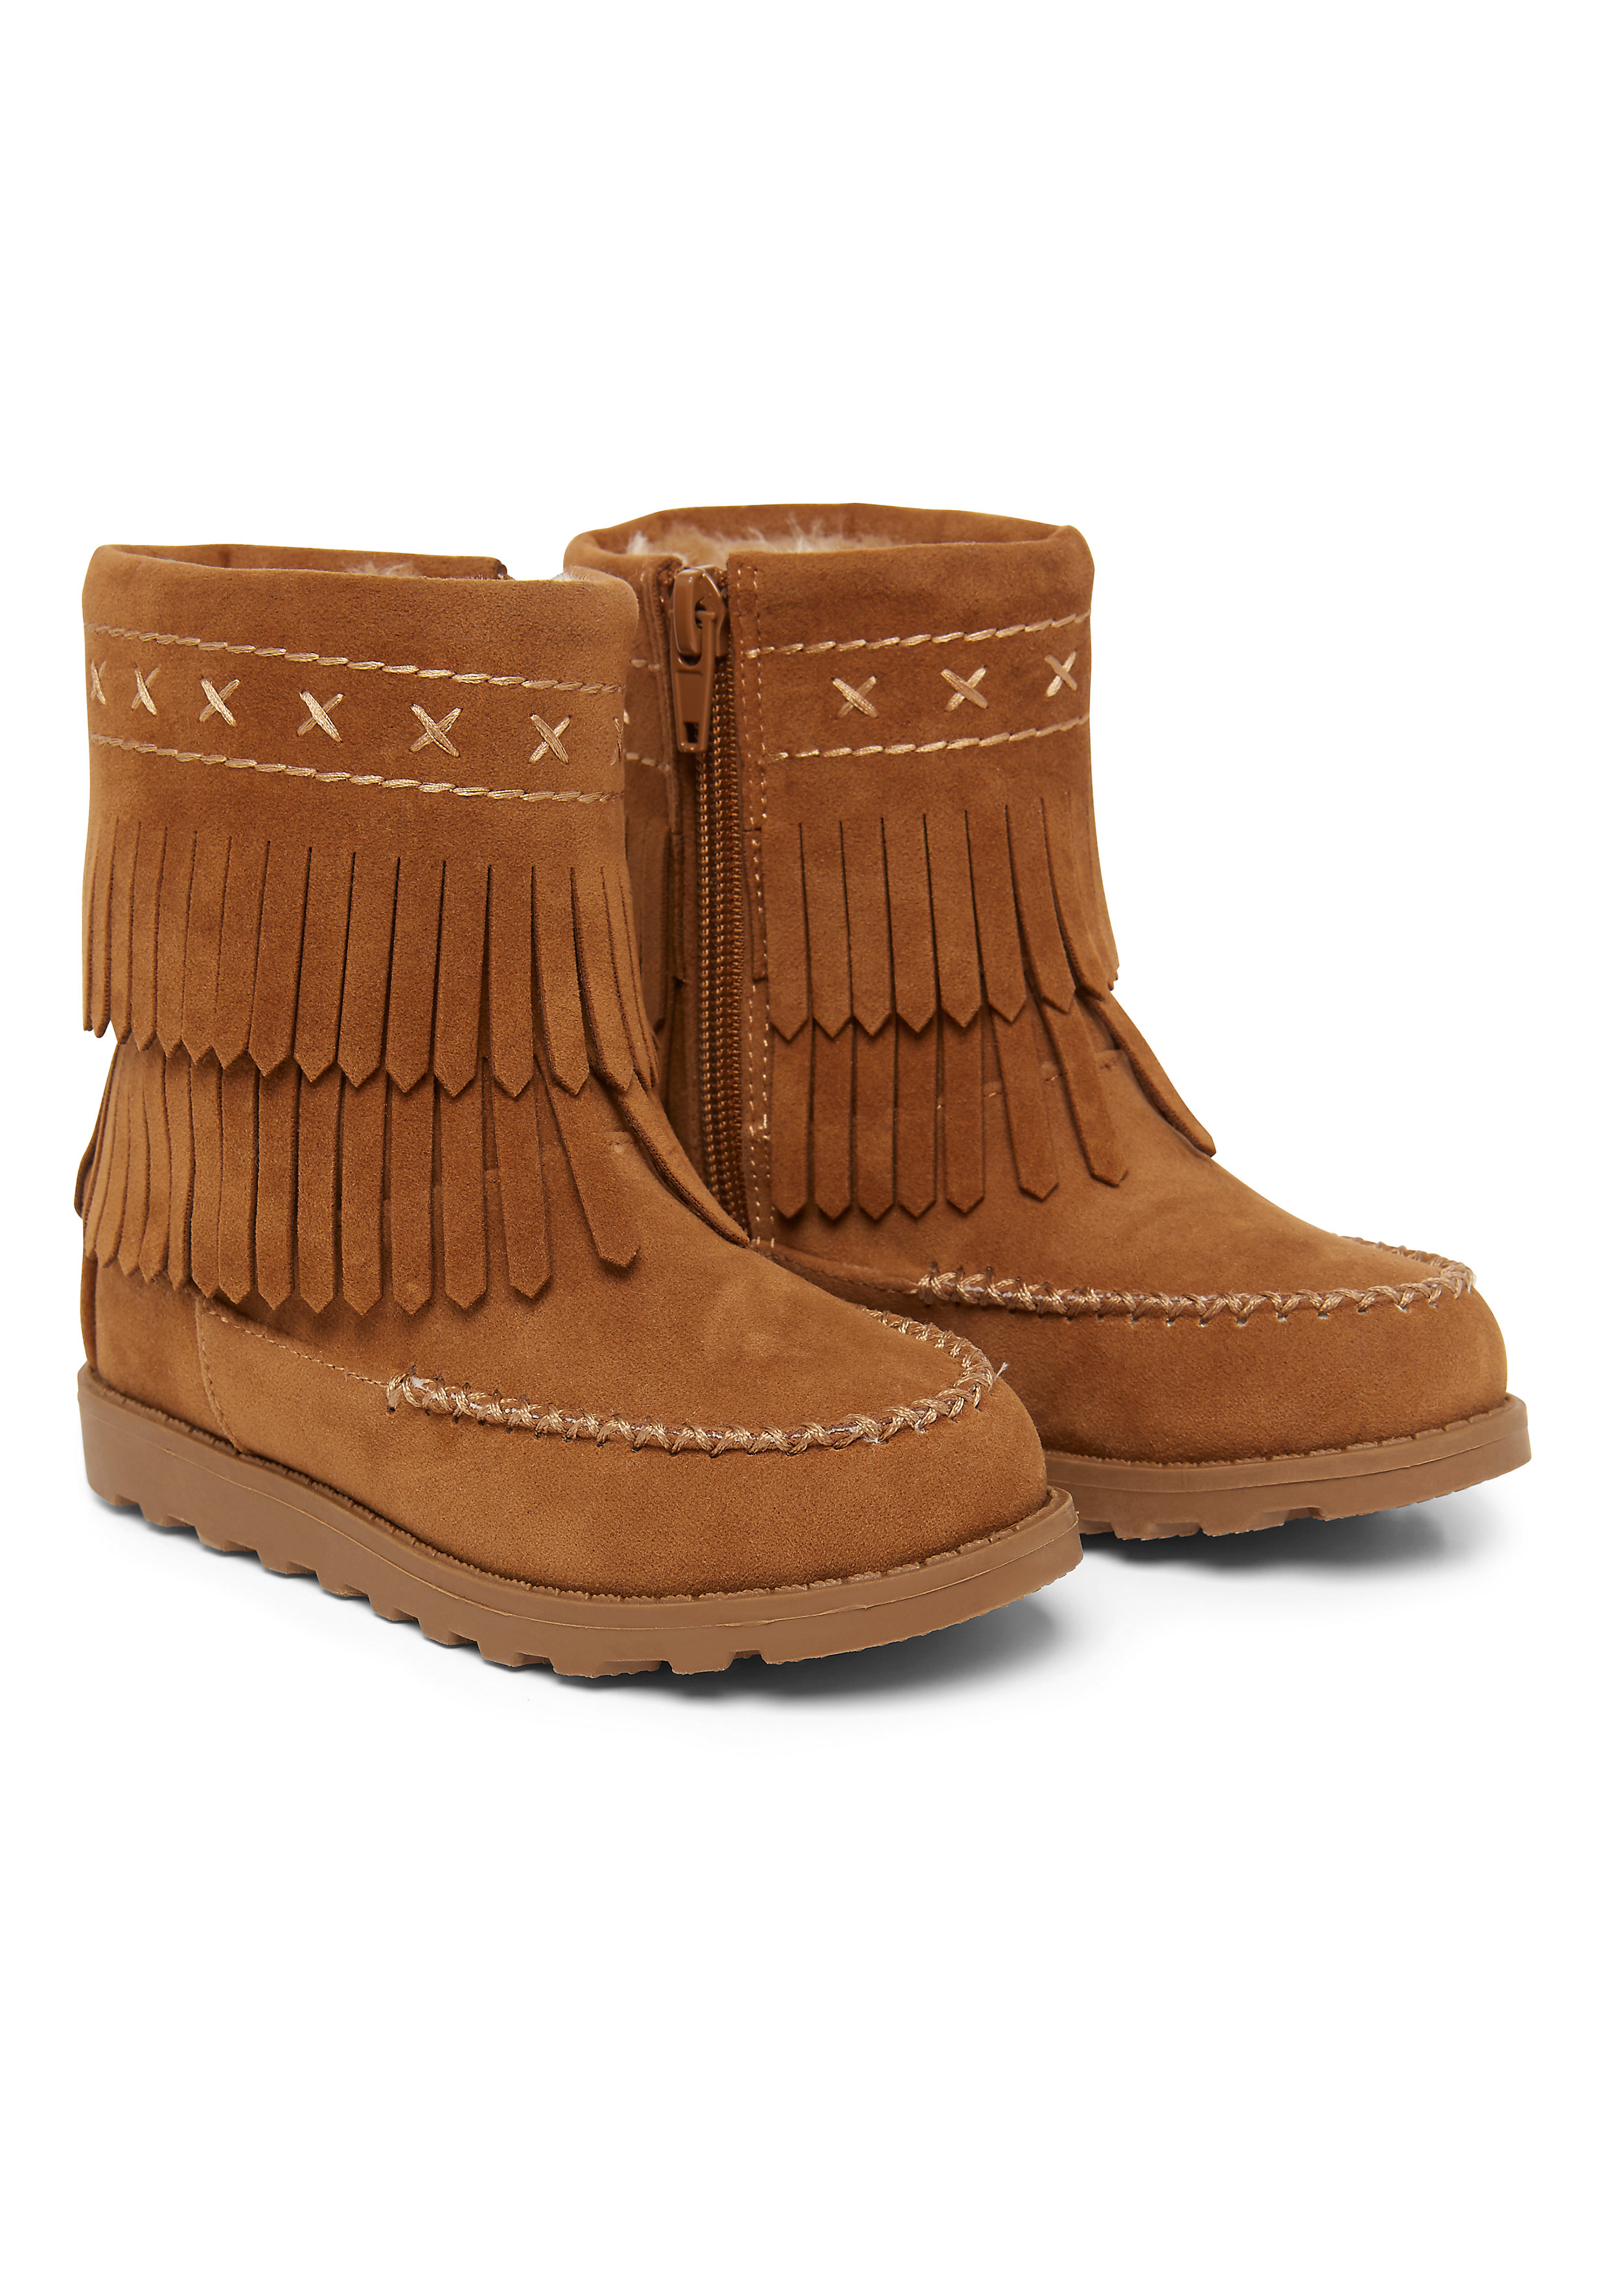 Mothercare | Girls Tassle Boots - Brown